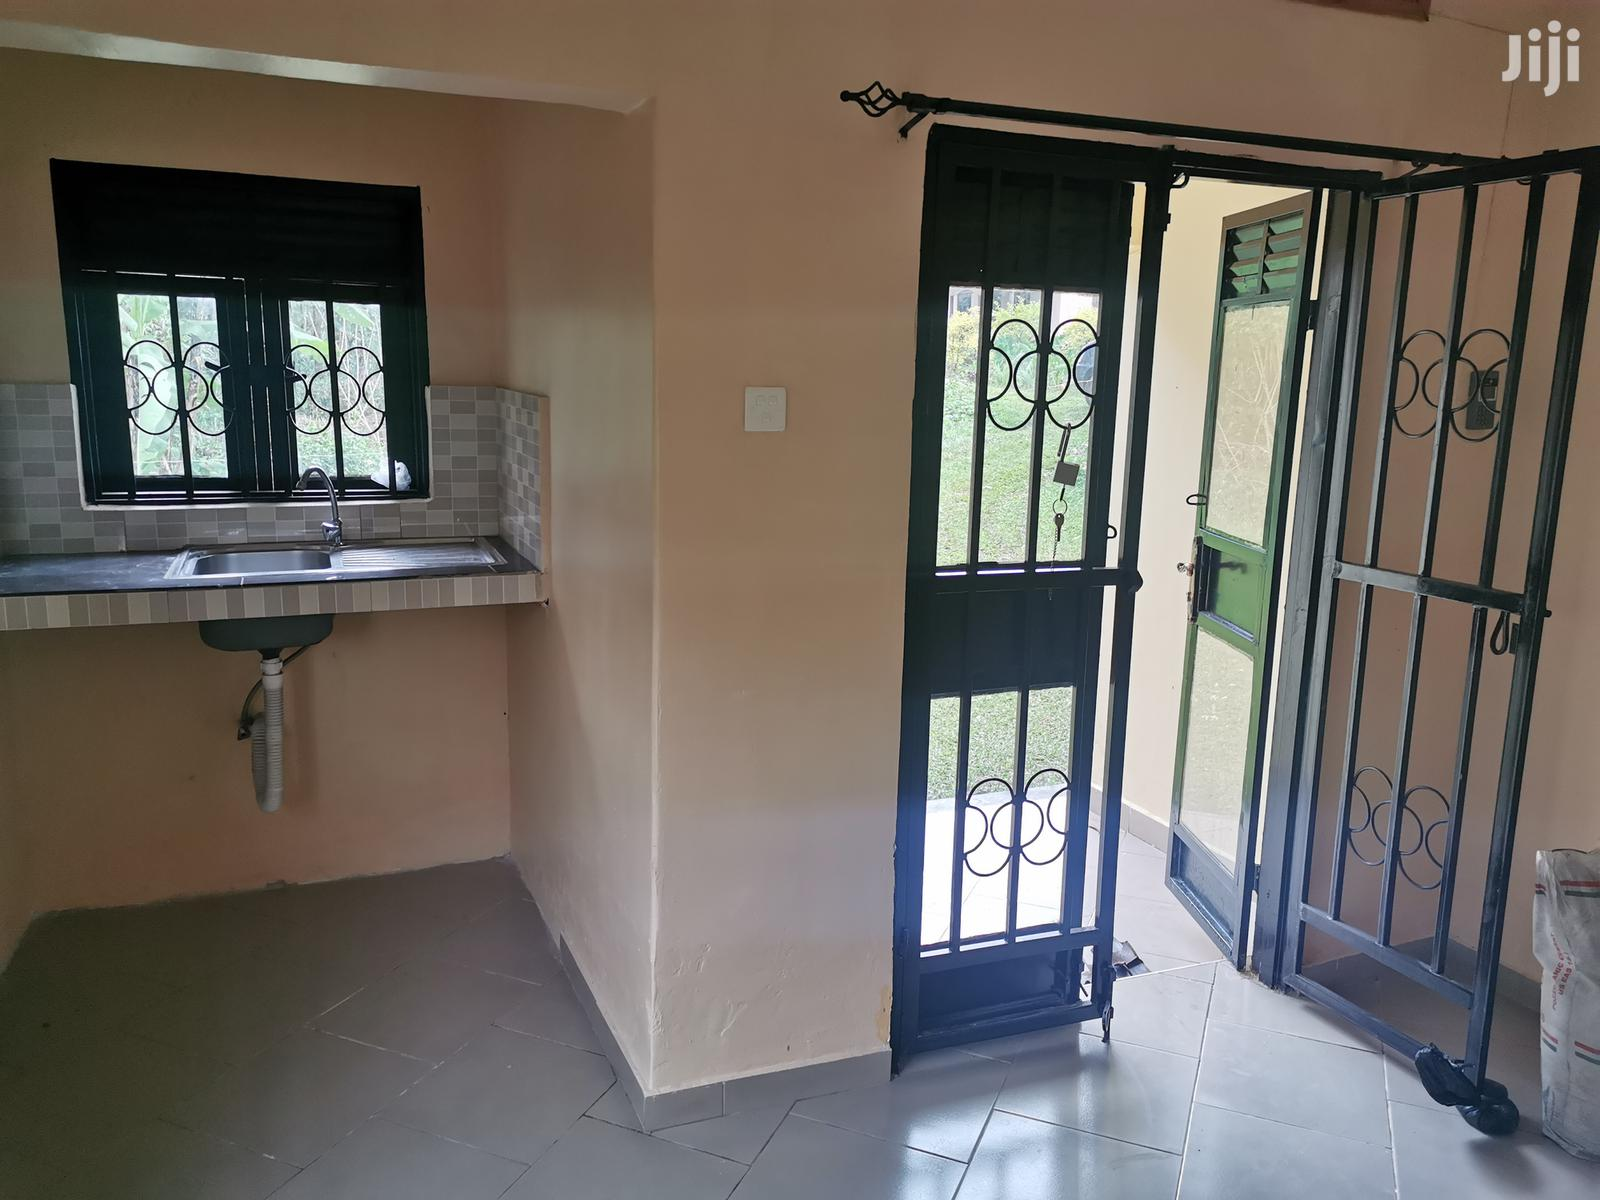 Rental House   Houses & Apartments For Rent for sale in Mukono, Central Region, Uganda